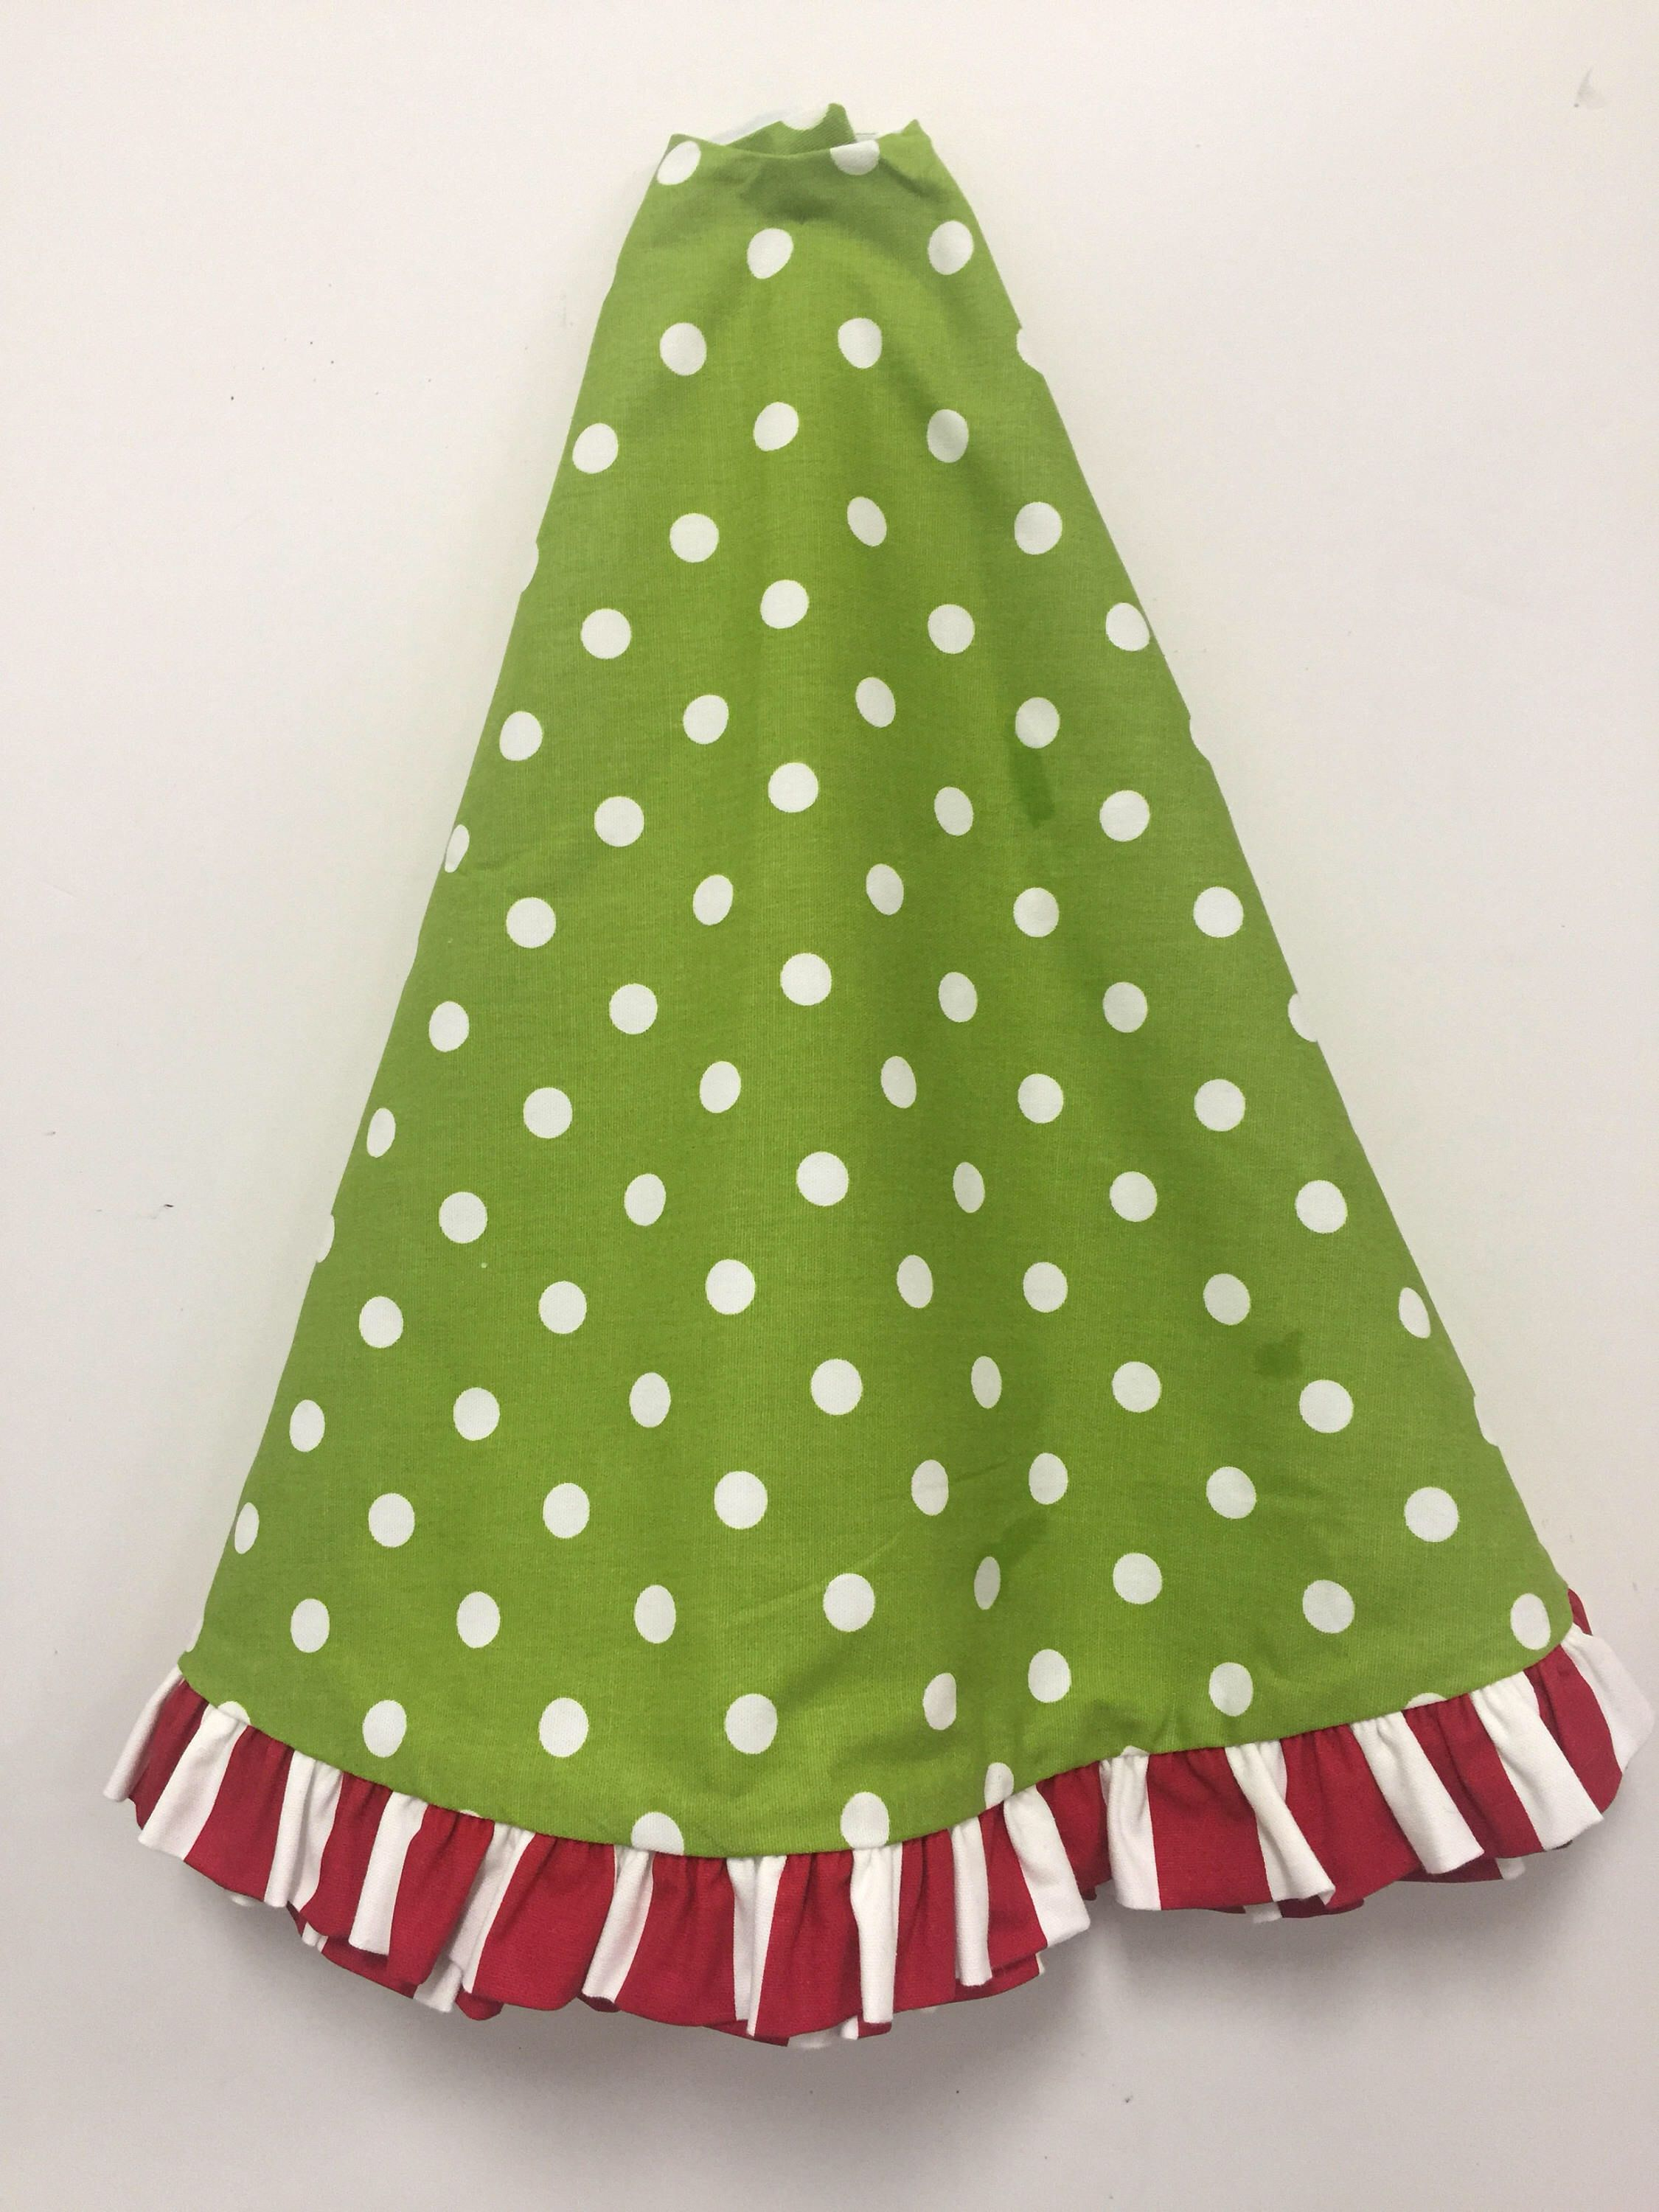 Tree Skirt Christmas Tree Skirt 52 Tree Skirt Tree Skirt Wruffle Burlap Christmas Quadafoil Dot